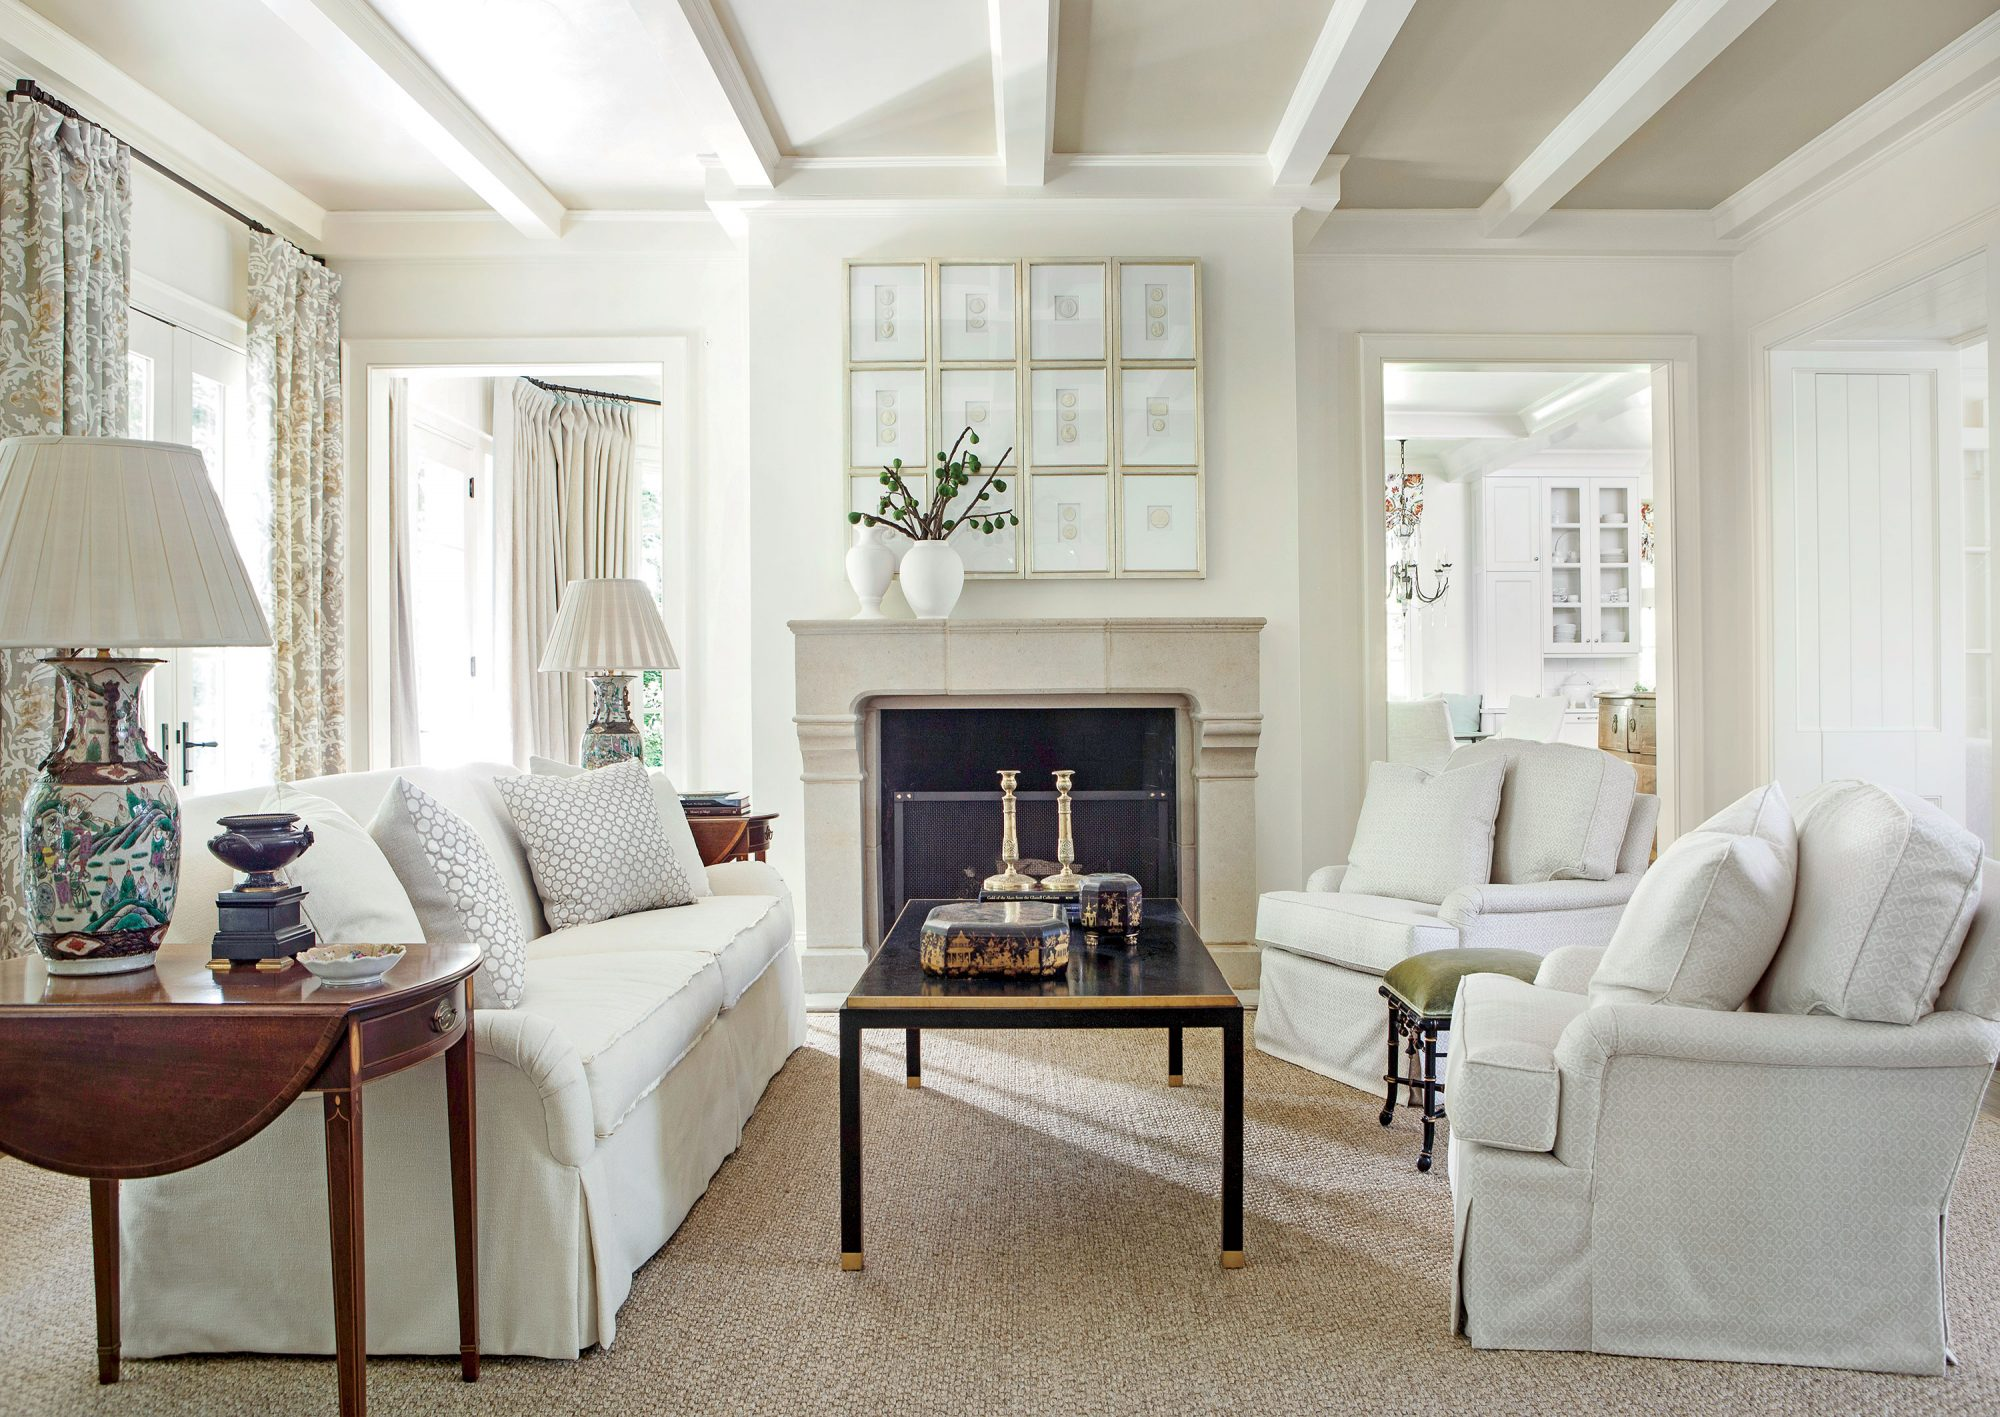 Lighten Up with White. 106 Living Room Decorating Ideas   Southern Living